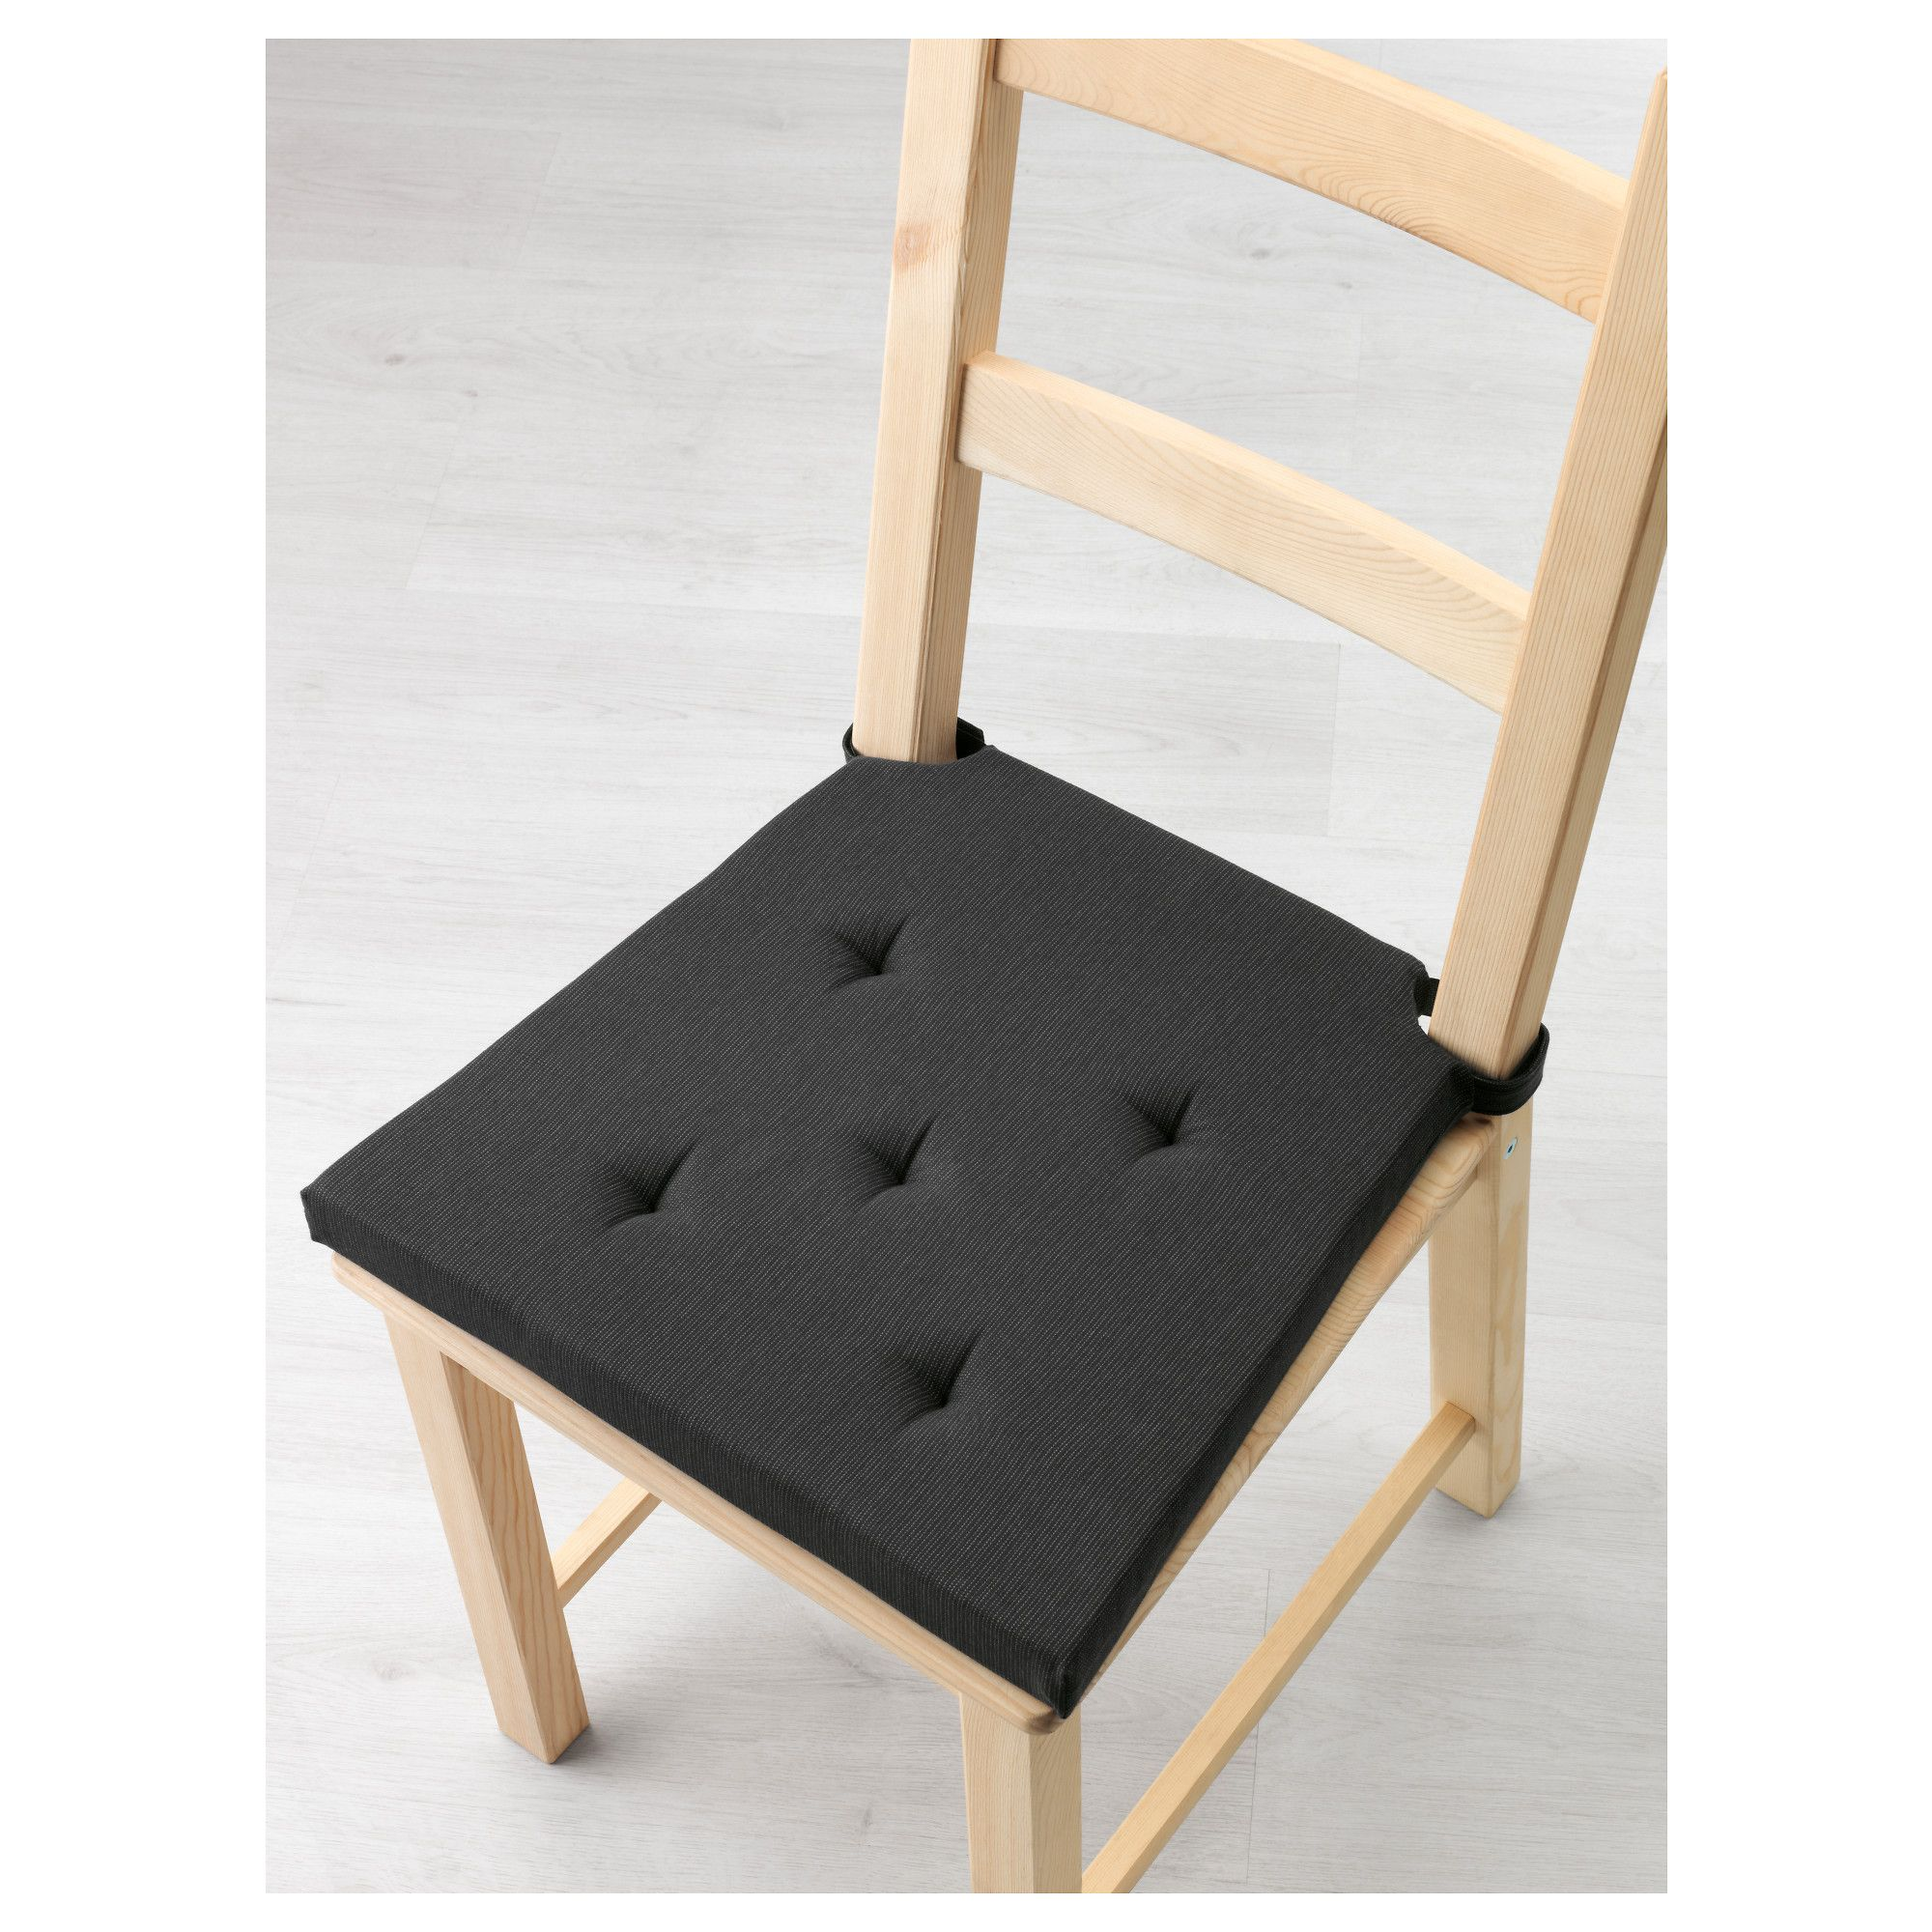 ikea justina chair pad gray black chair pads and products